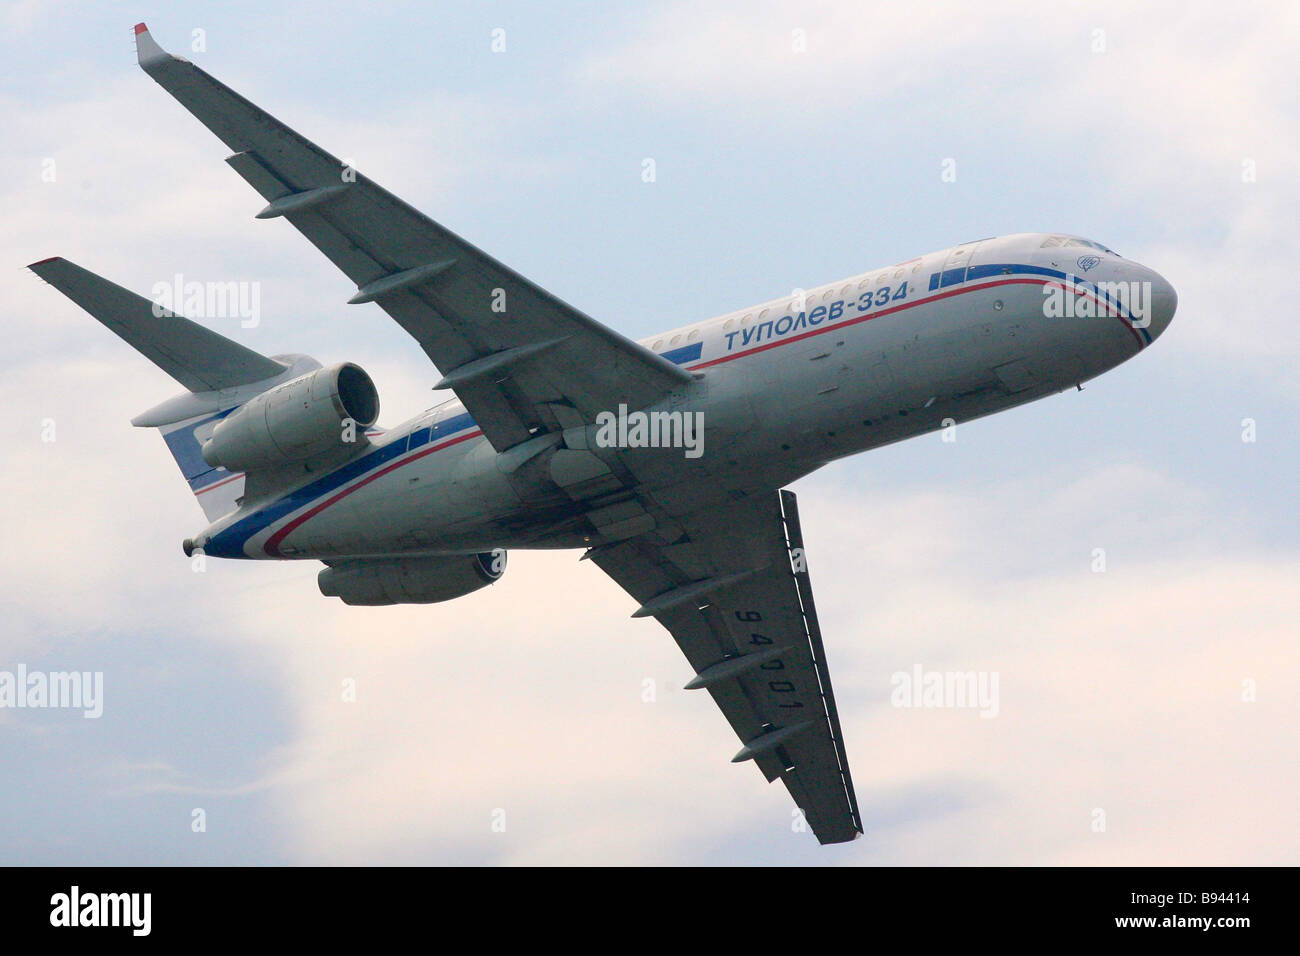 A Tupolev 334 short haul turbojet aircraft during a demonstration flight at the 8th International air and space - Stock Image